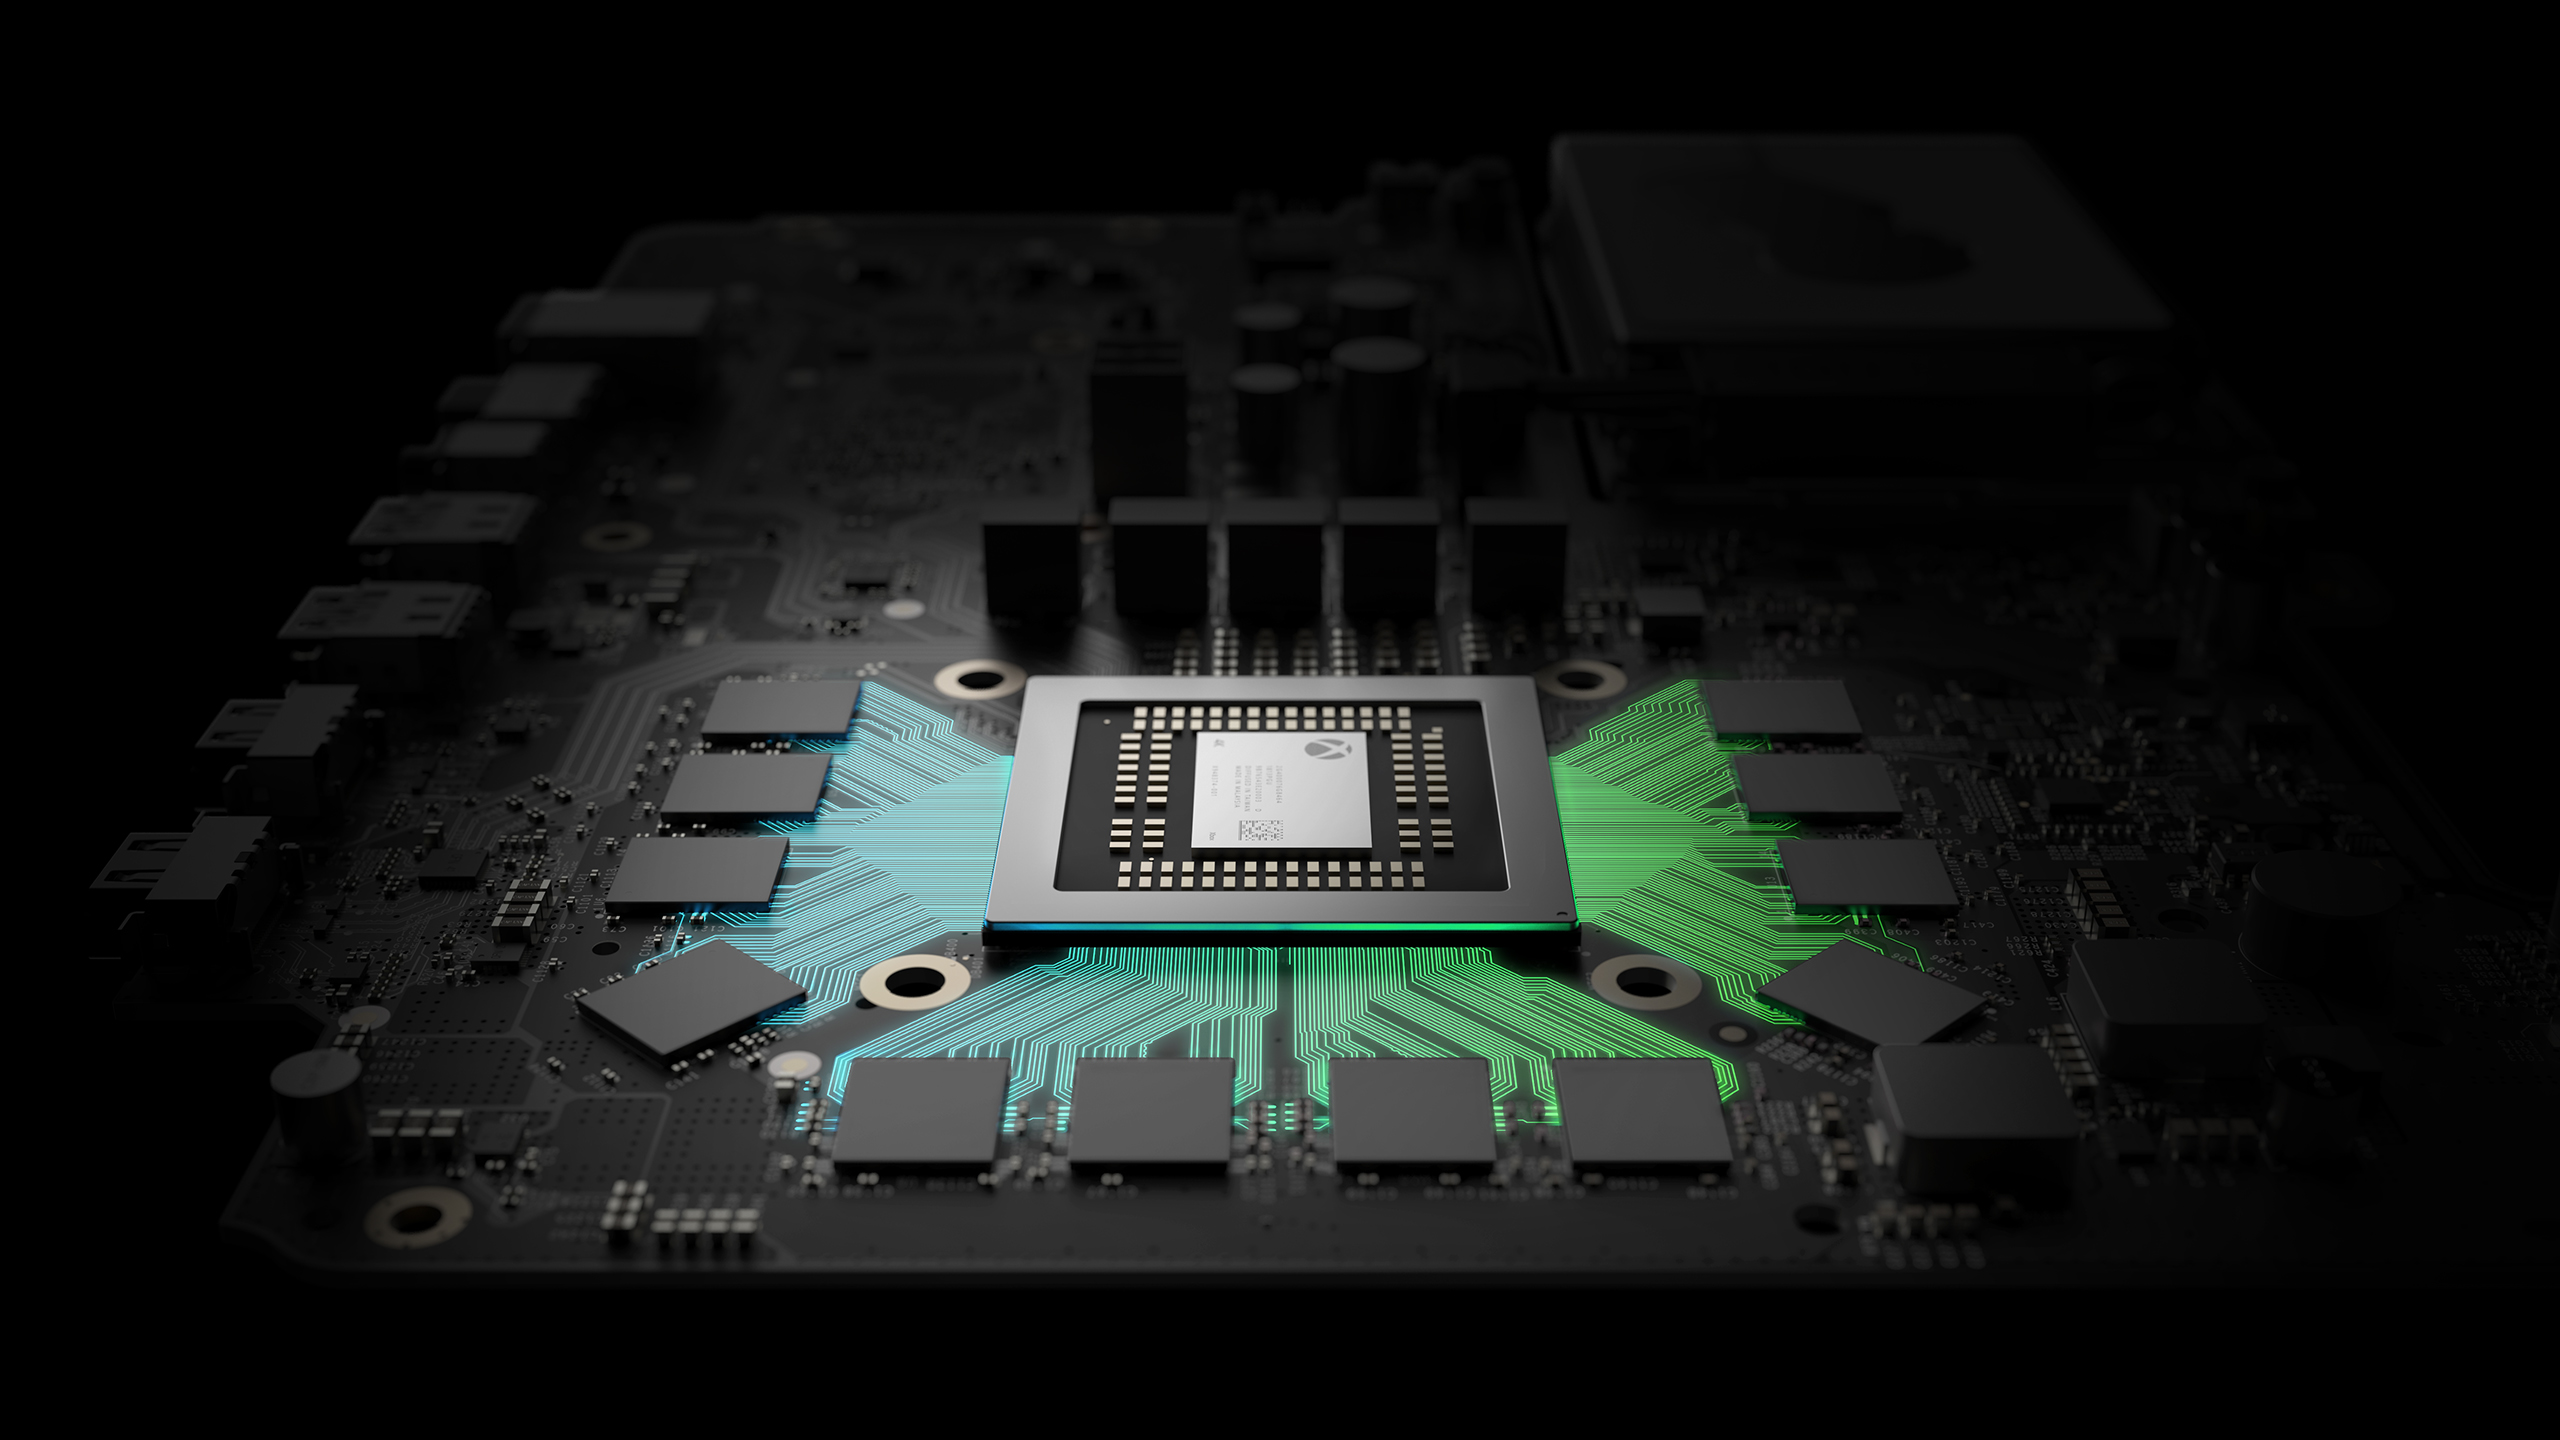 Project Scorpio Xbox HD Computer 4k Wallpapers Images